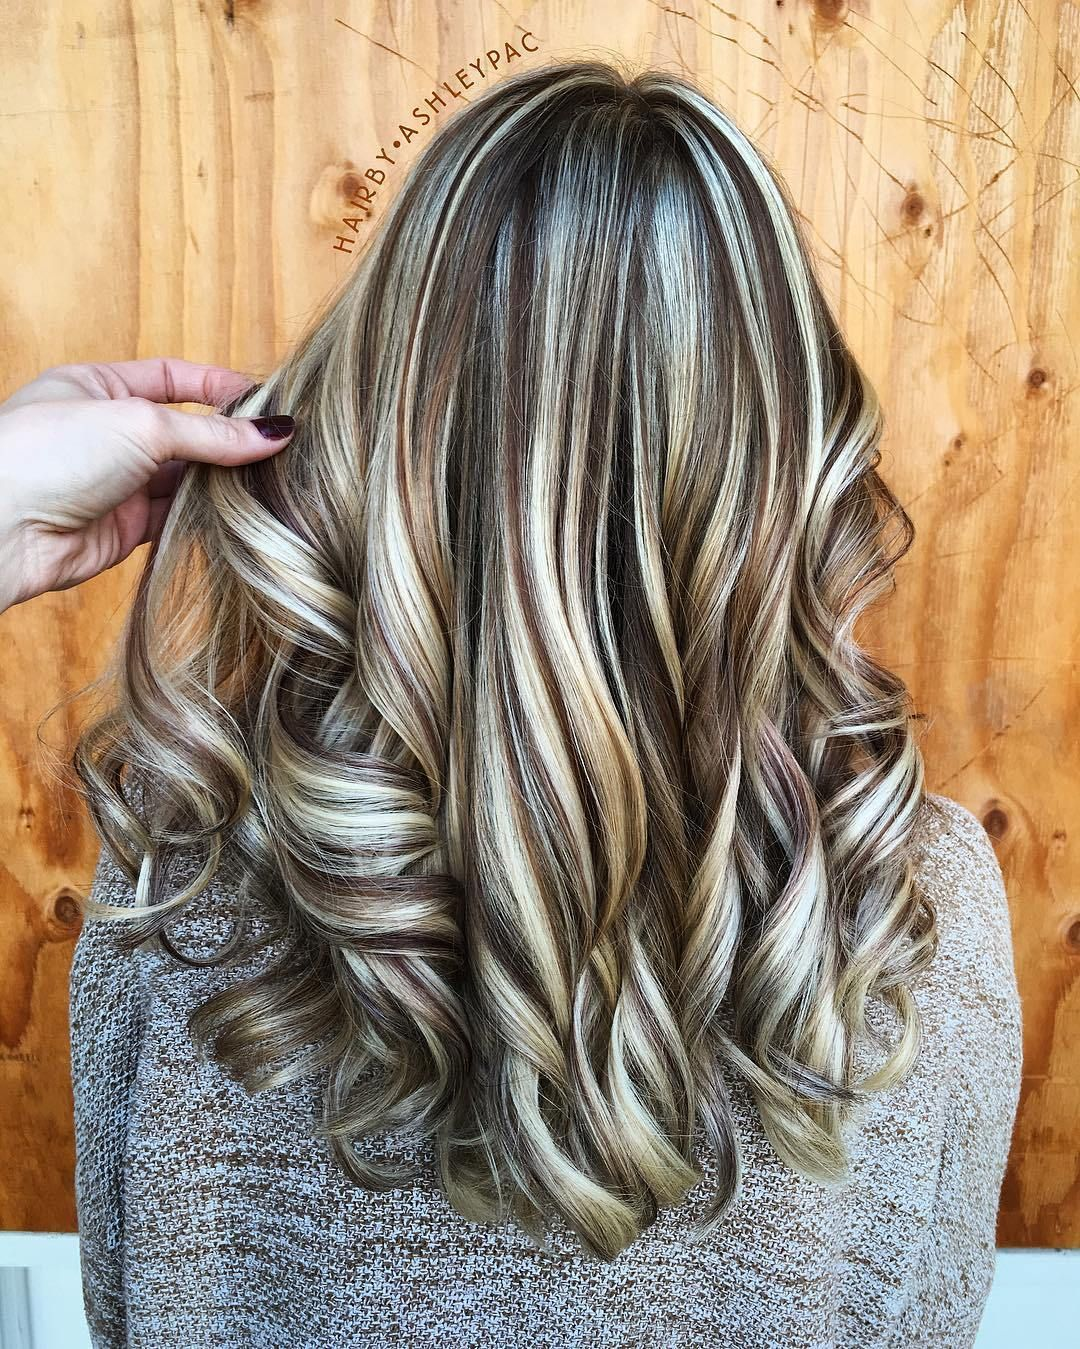 45 ideas for light brown hair with highlights and lowlights 45 ideas for light brown hair with highlights and lowlights pmusecretfo Choice Image